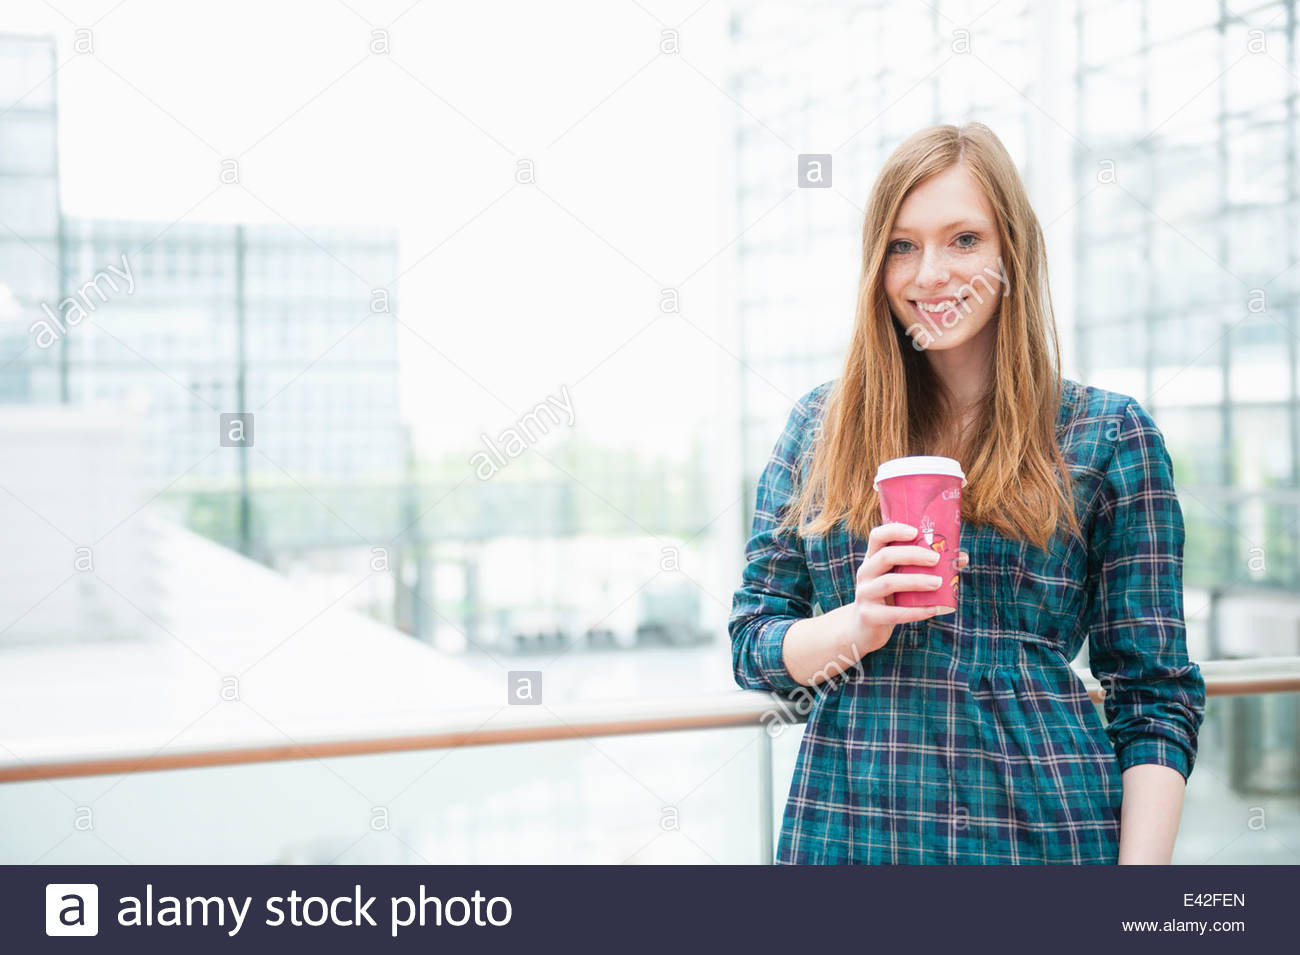 Portrait of young woman in city with takeaway coffee - Stock Image